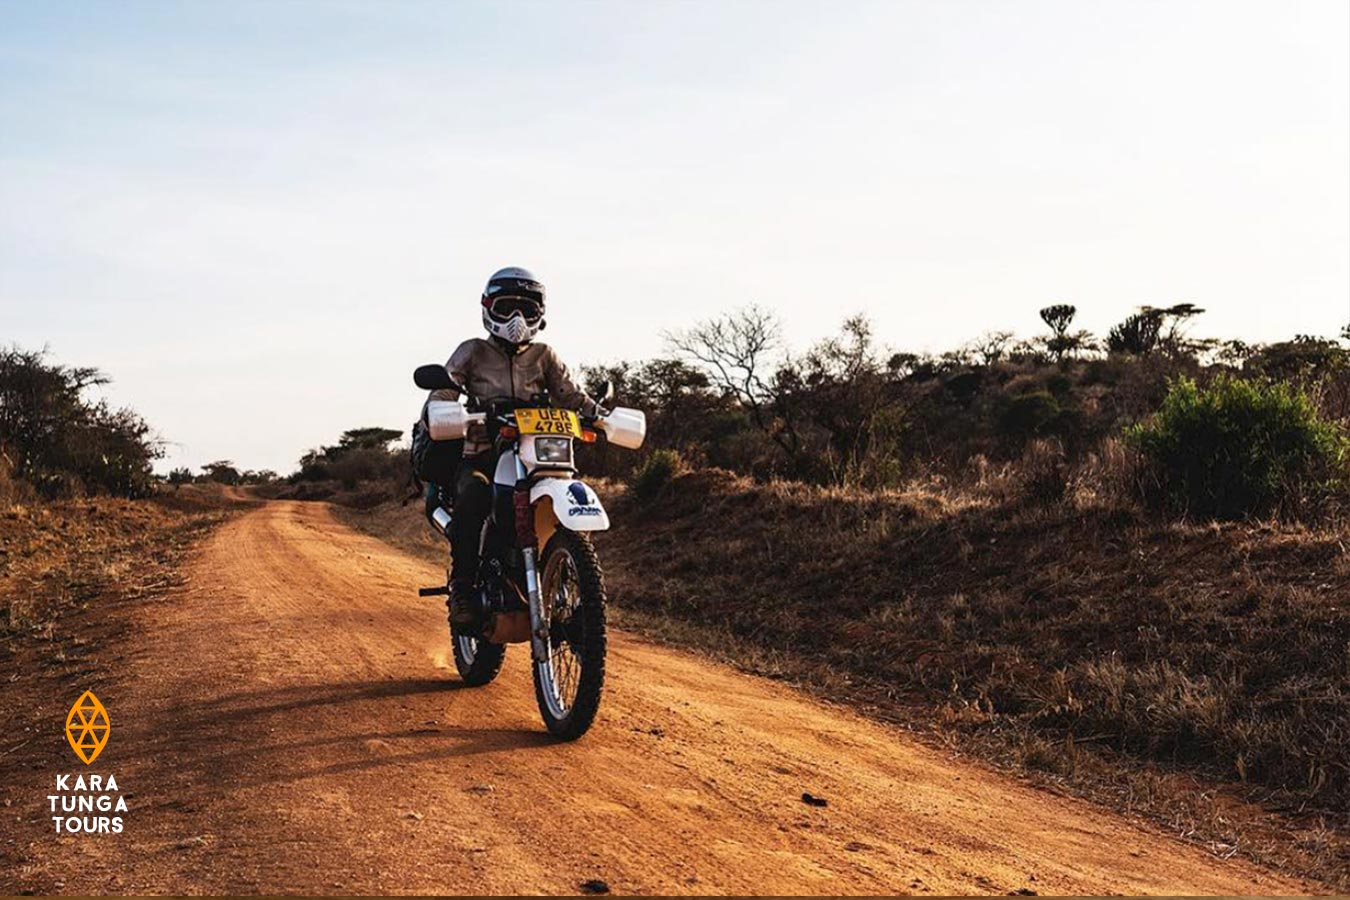 kara-tunga-karamoja-motor-bike-tours-safaris-travel-culture-8